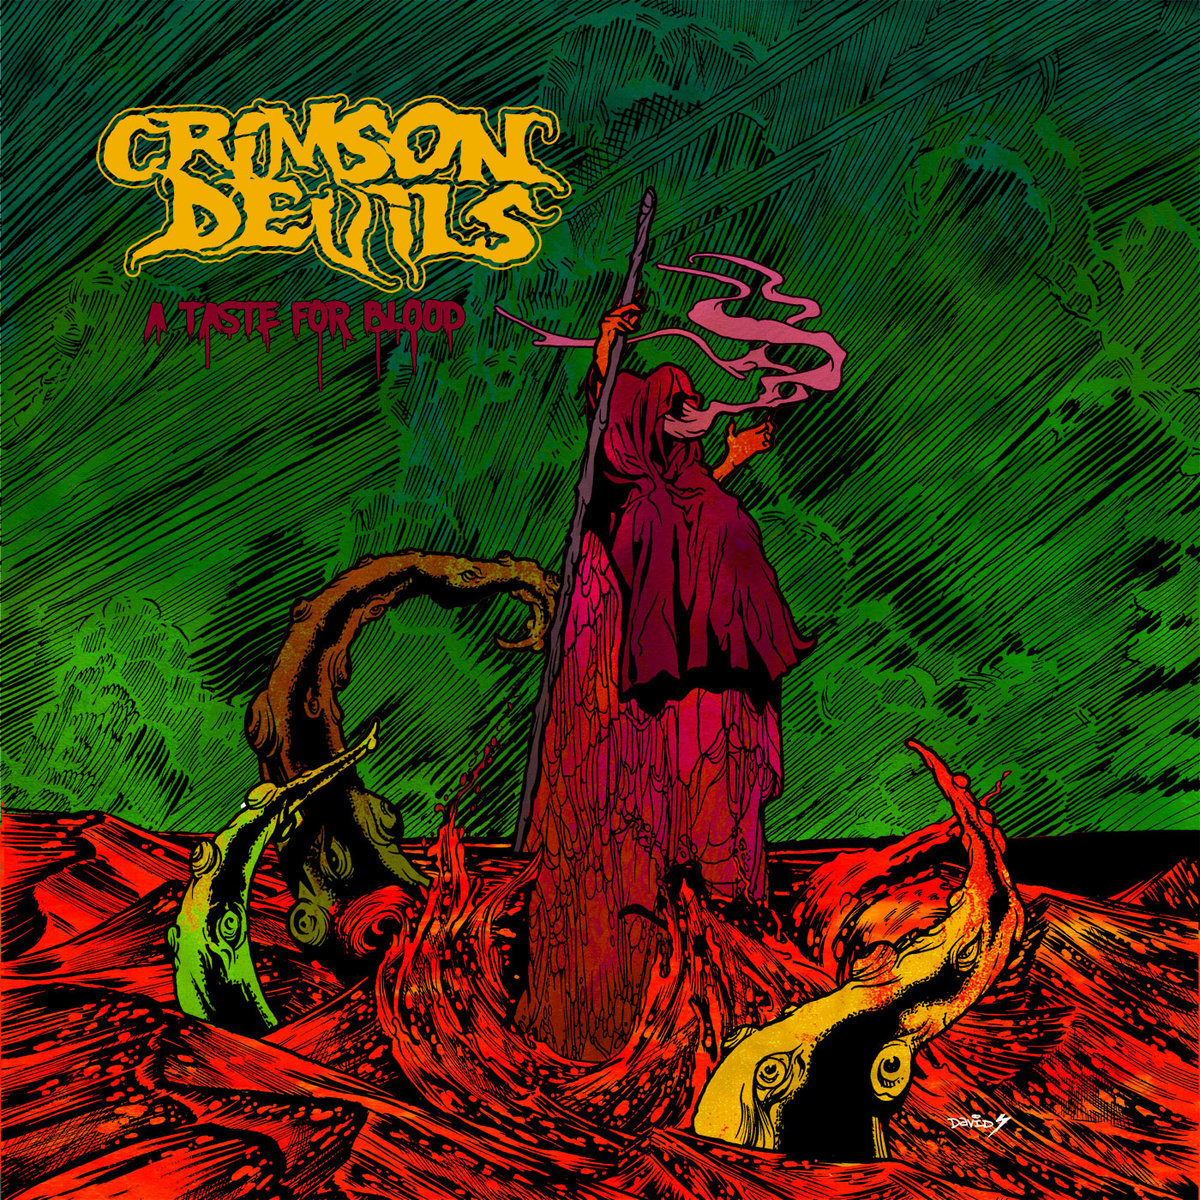 crimson devils a taste for blood